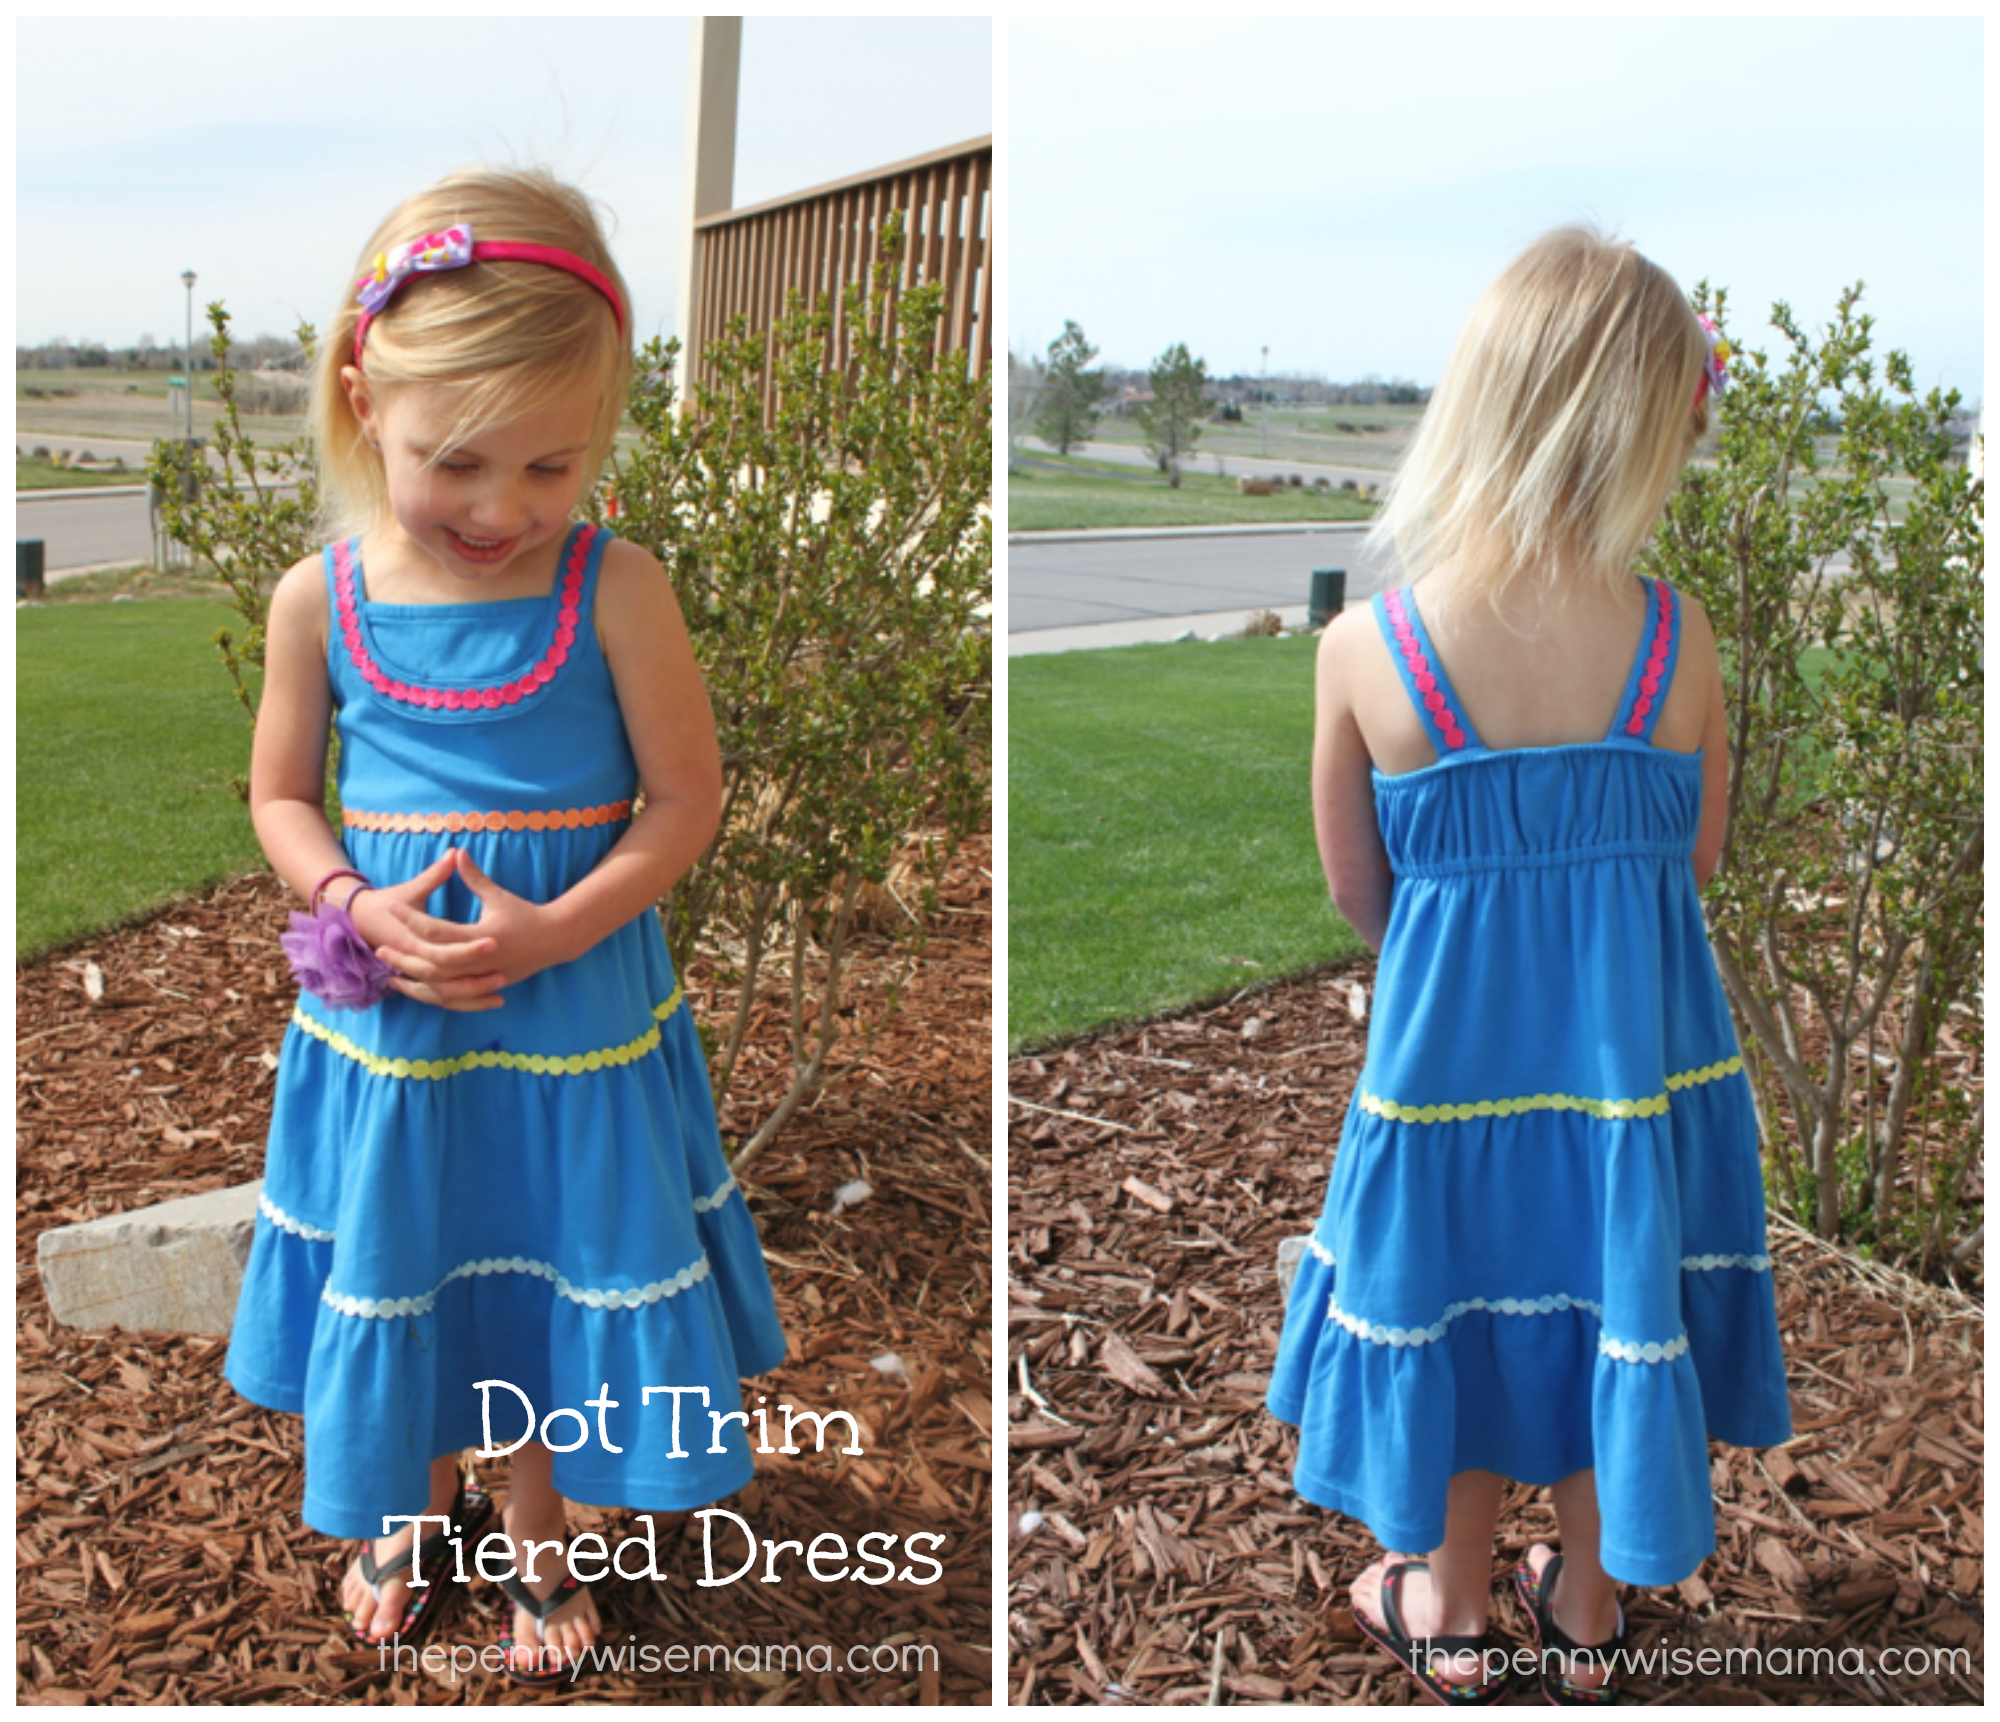 gymboree dot tiered dress